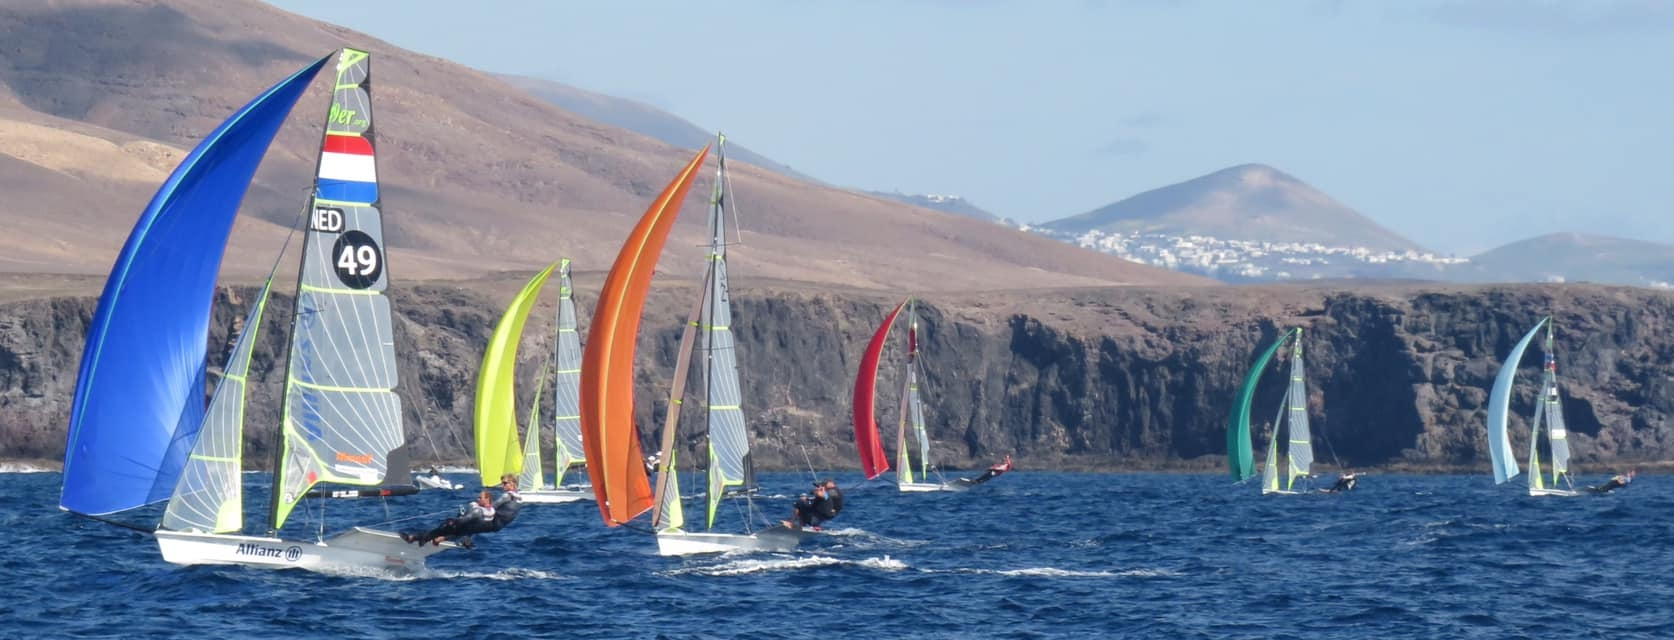 Olympic Classes - Lanzarote Olympic Week - Lanzarote ESP - Part I - Final results